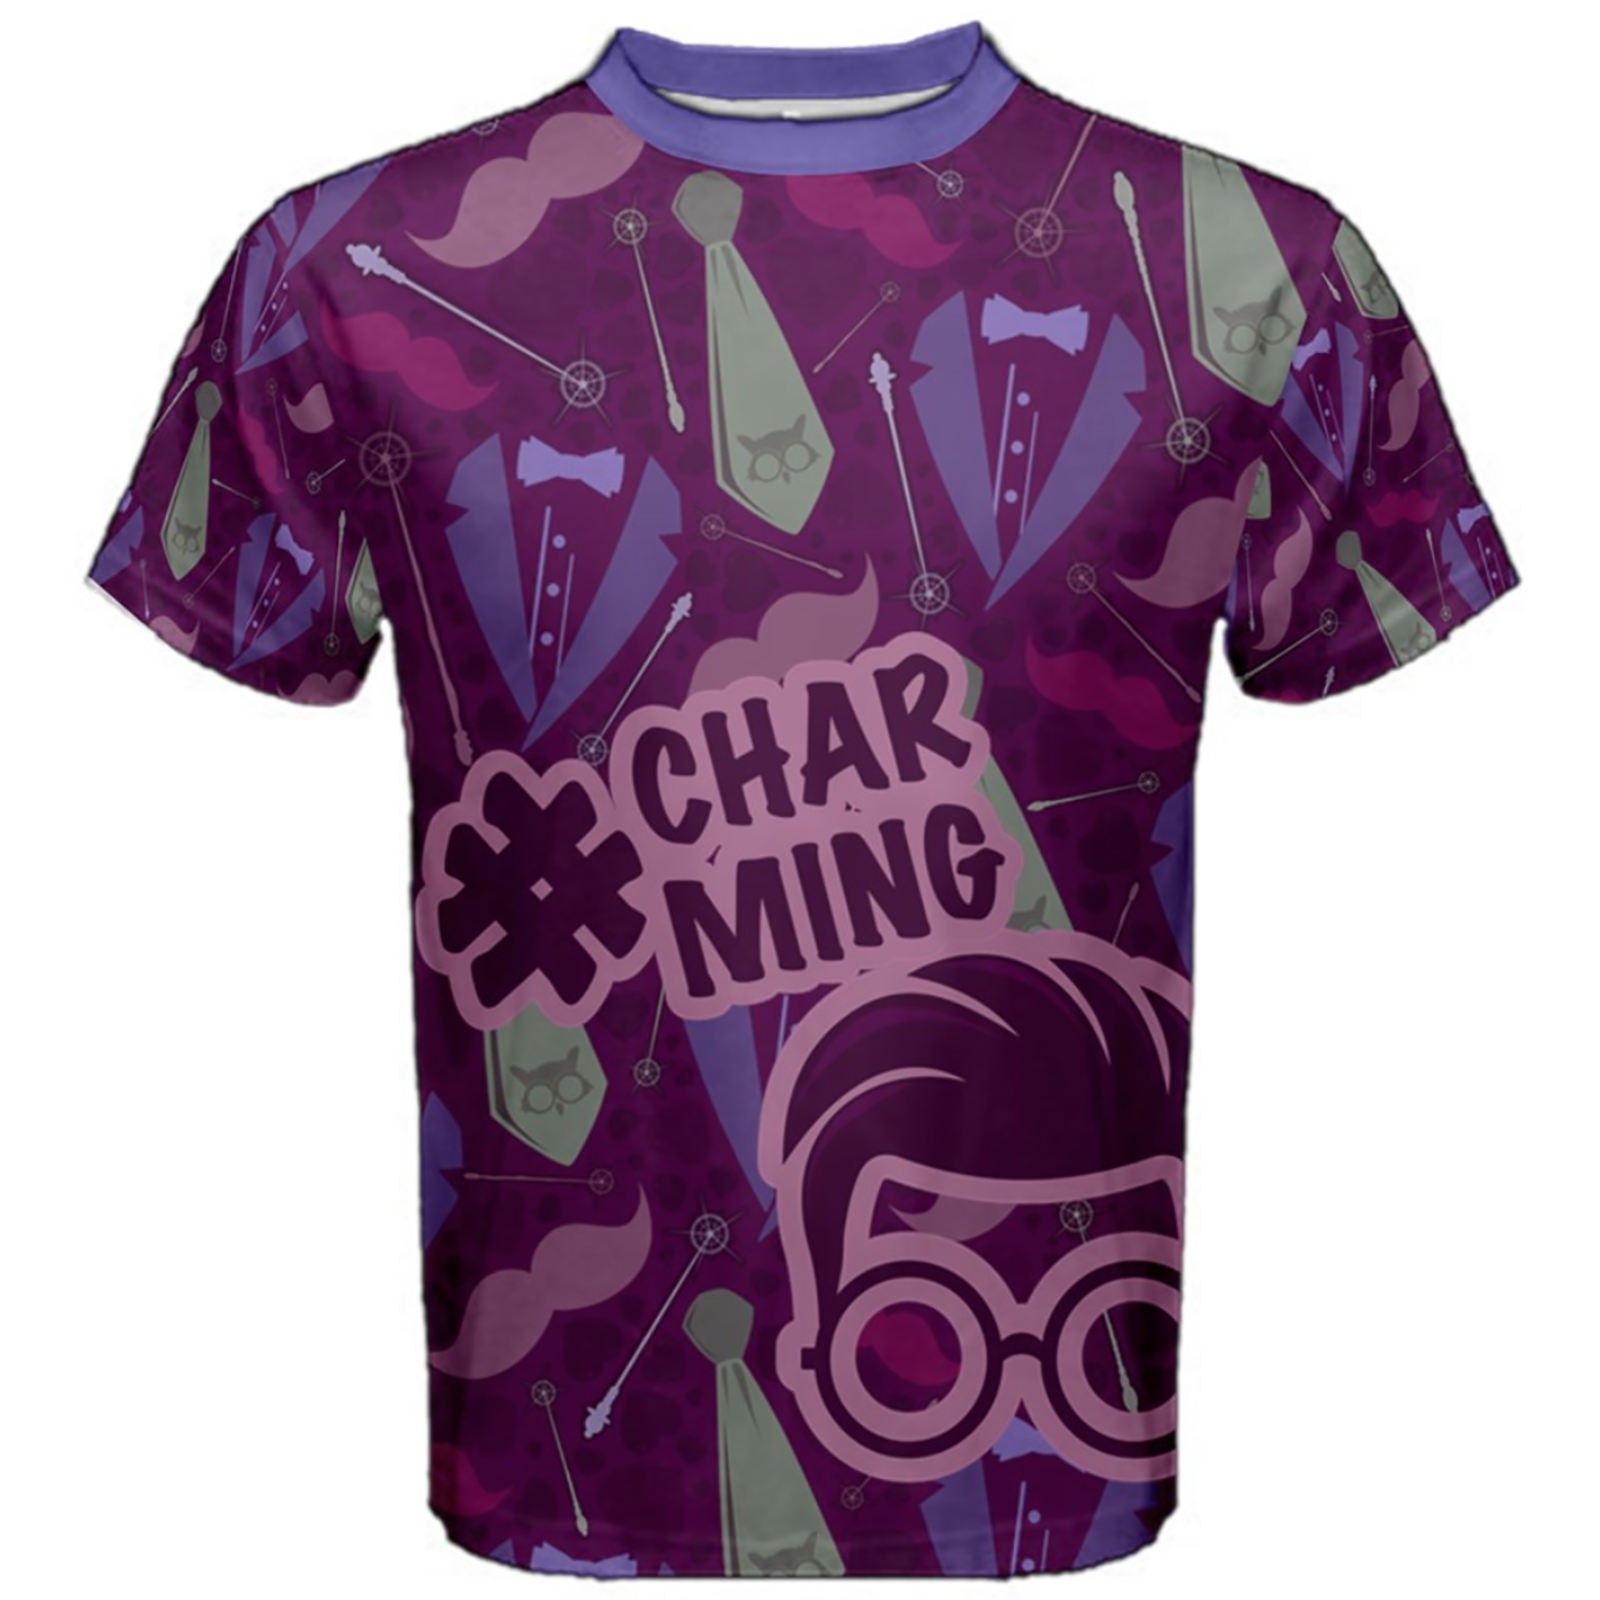 Charming Men's Cotton Tee (Patterned)